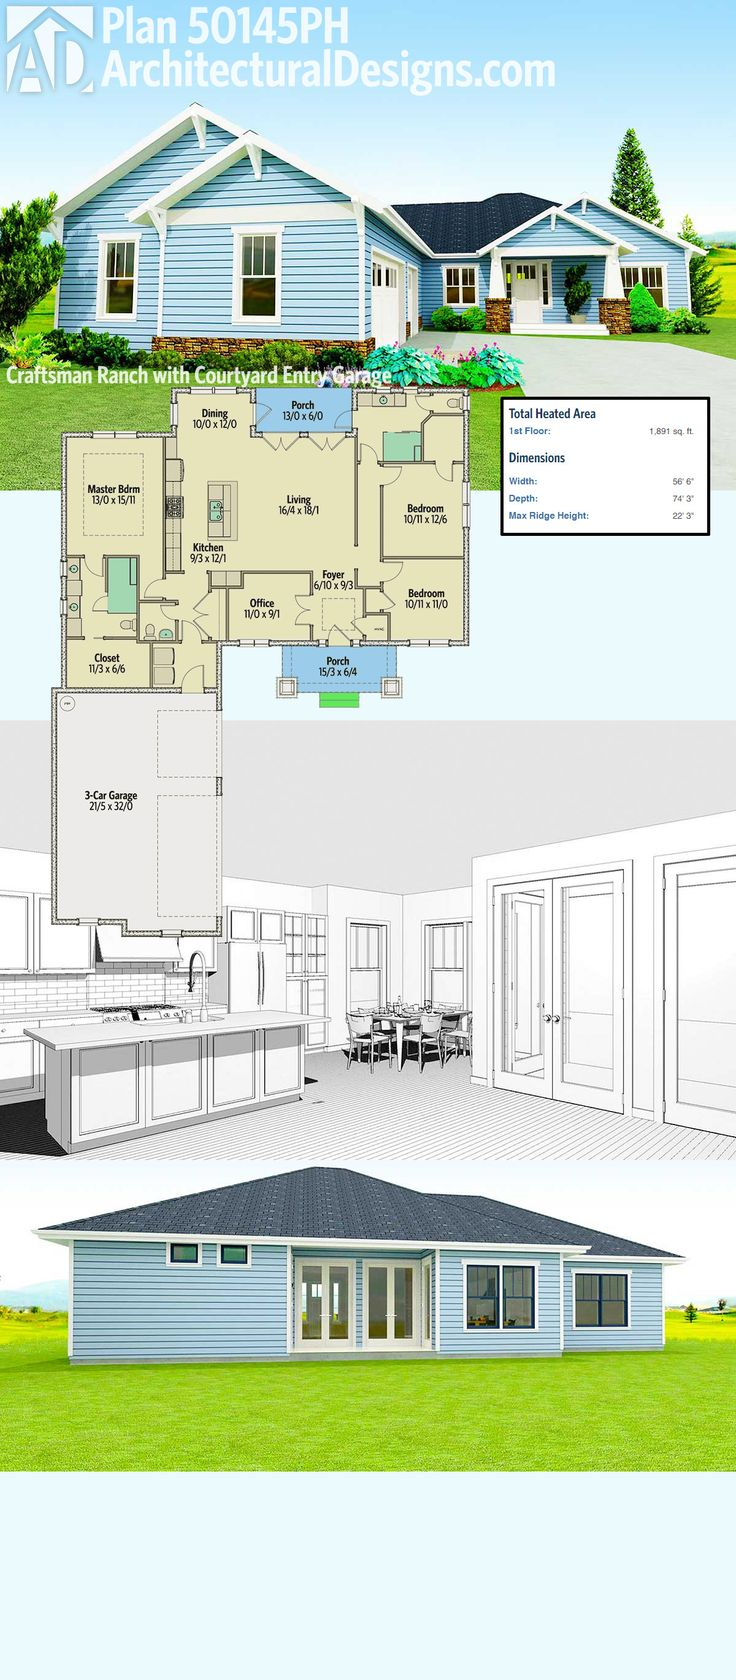 Best 25 craftsman ranch ideas on pinterest ranch floor for Courtyard entry house plans